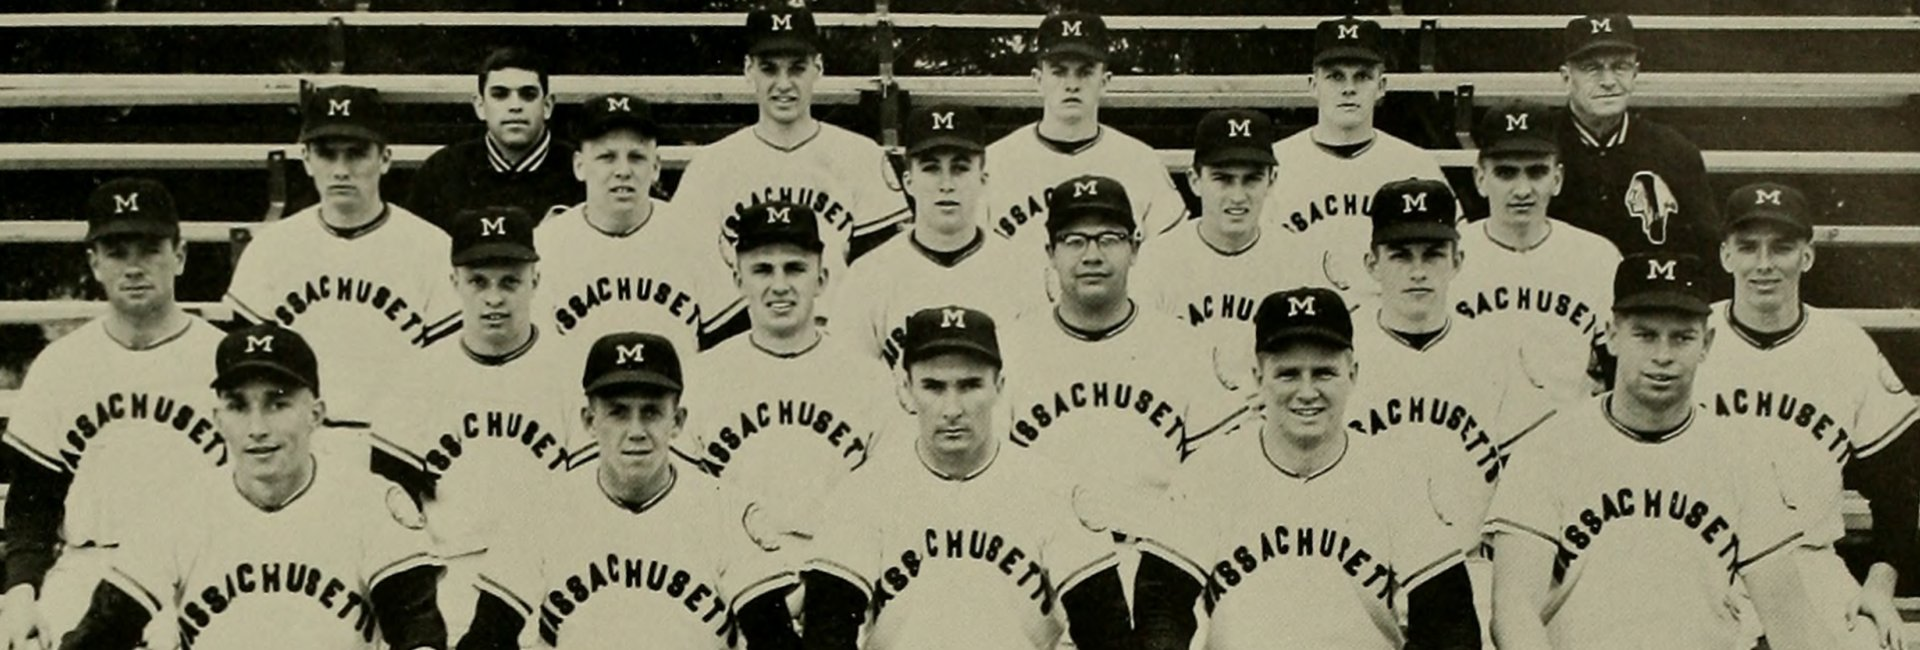 Paul Wennik '62 and UMass Amherst baseball team